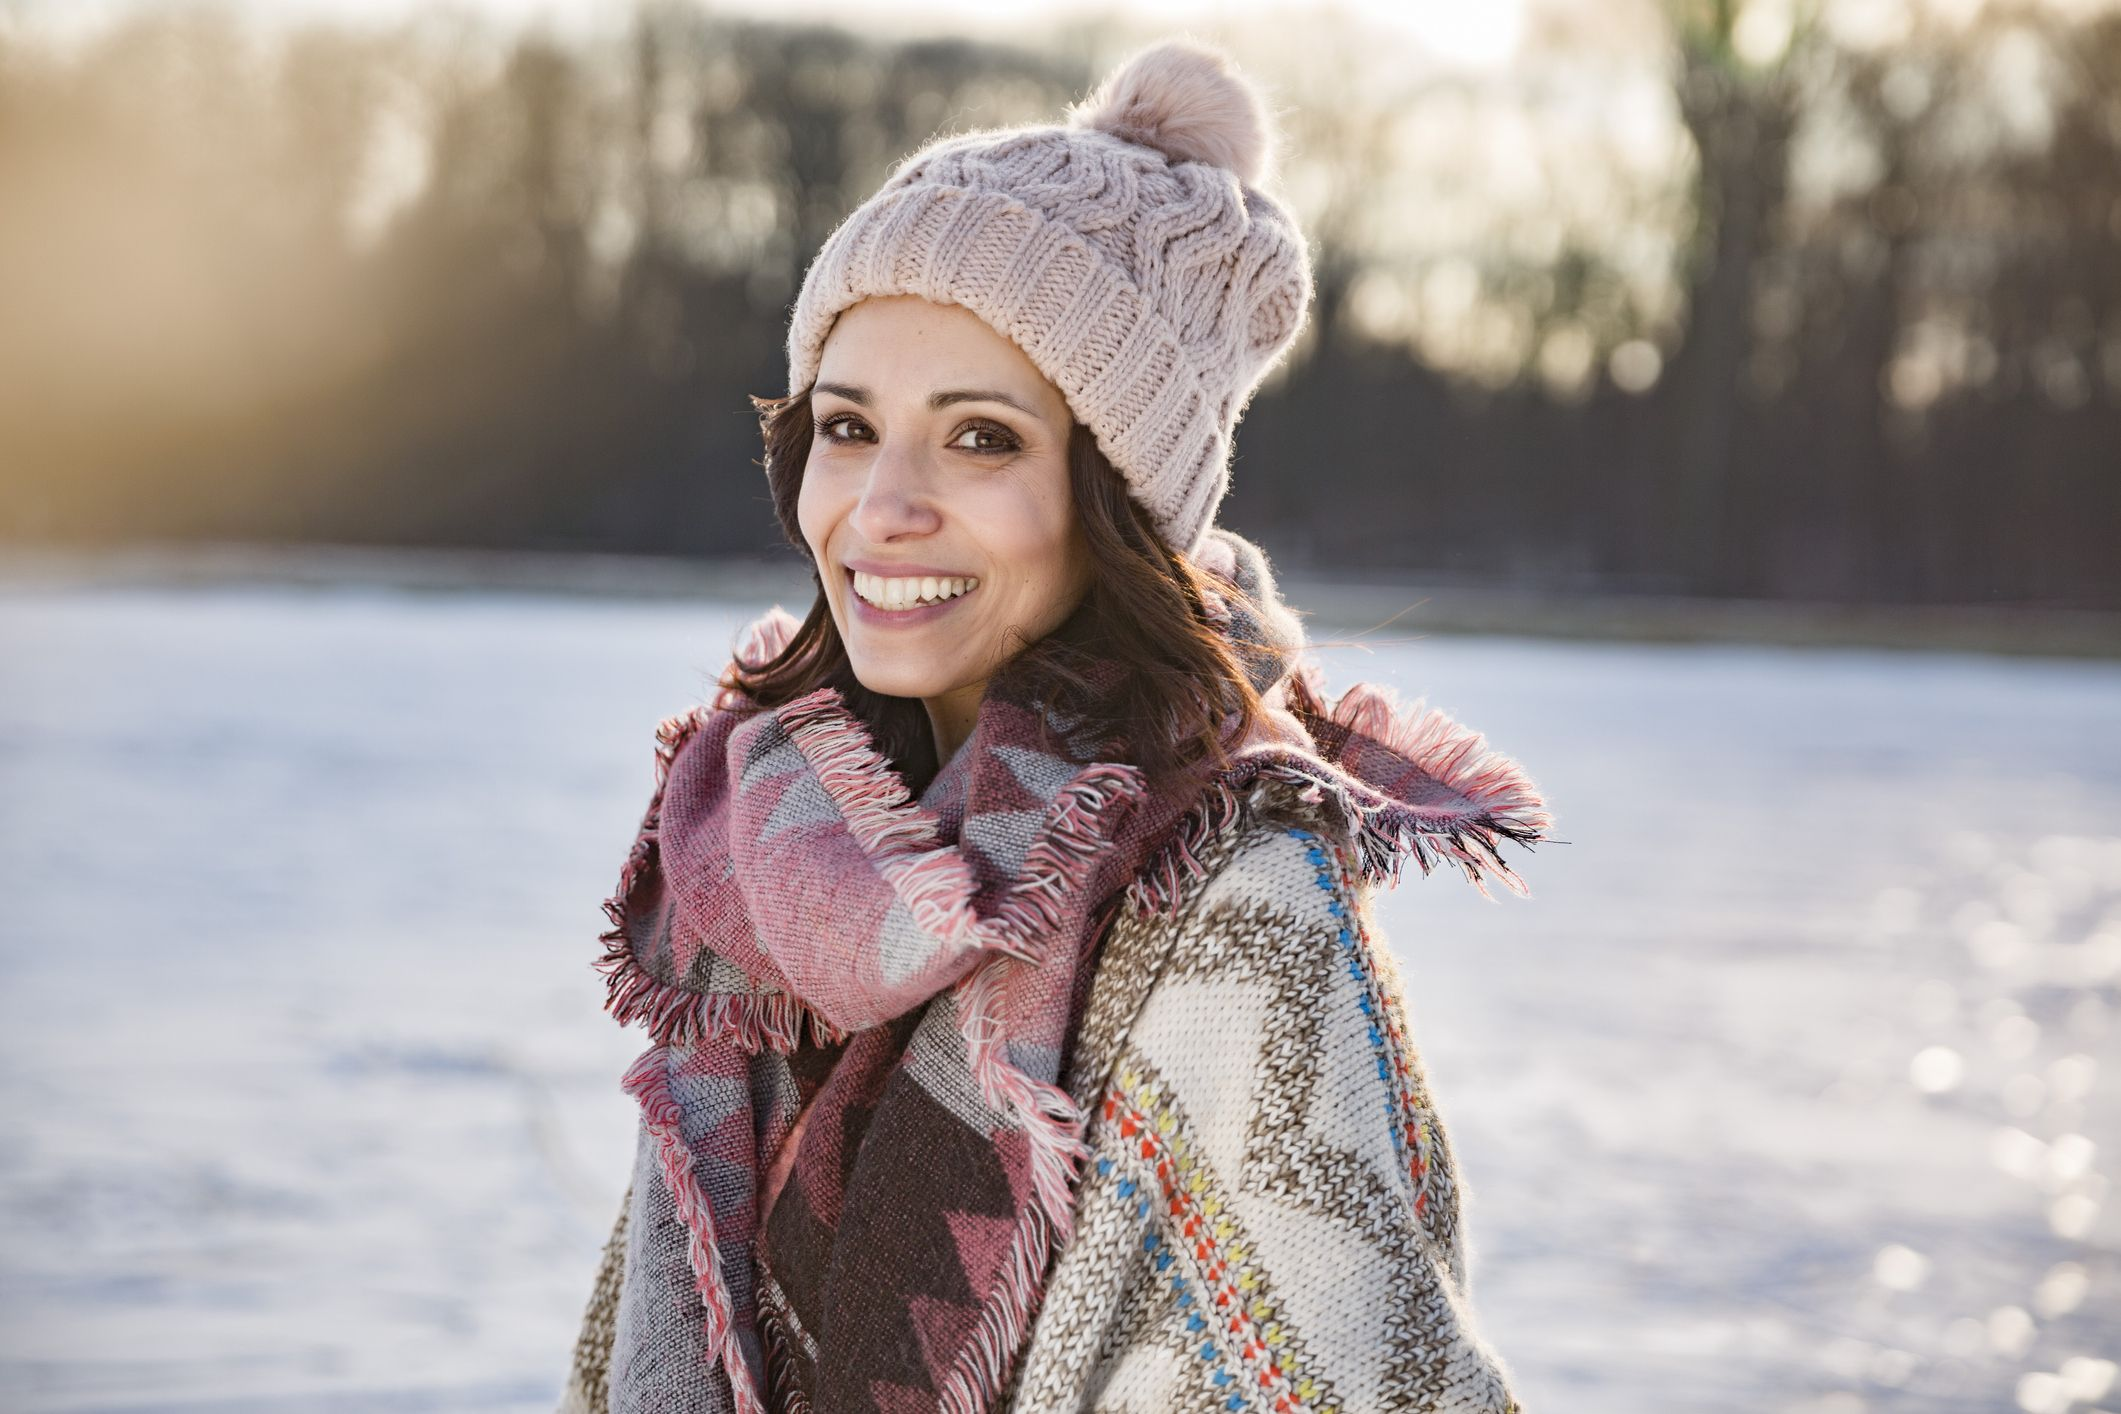 7 reasons cold weather is good for your skin